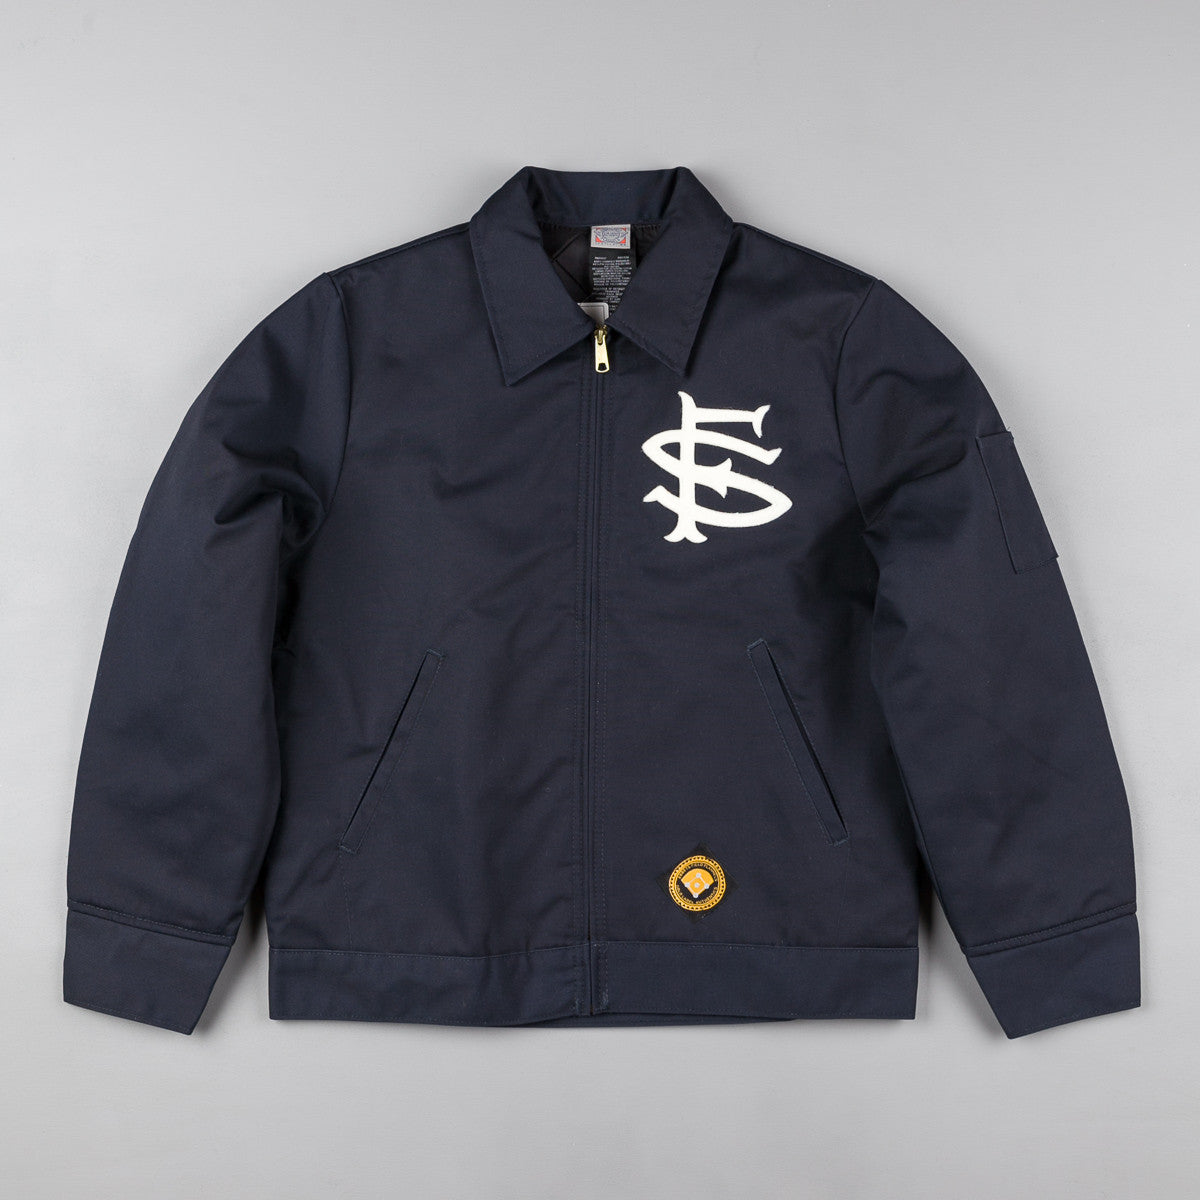 Ebbets Field Flannels San Francisco Seals Grounds Crew Jacket - Navy